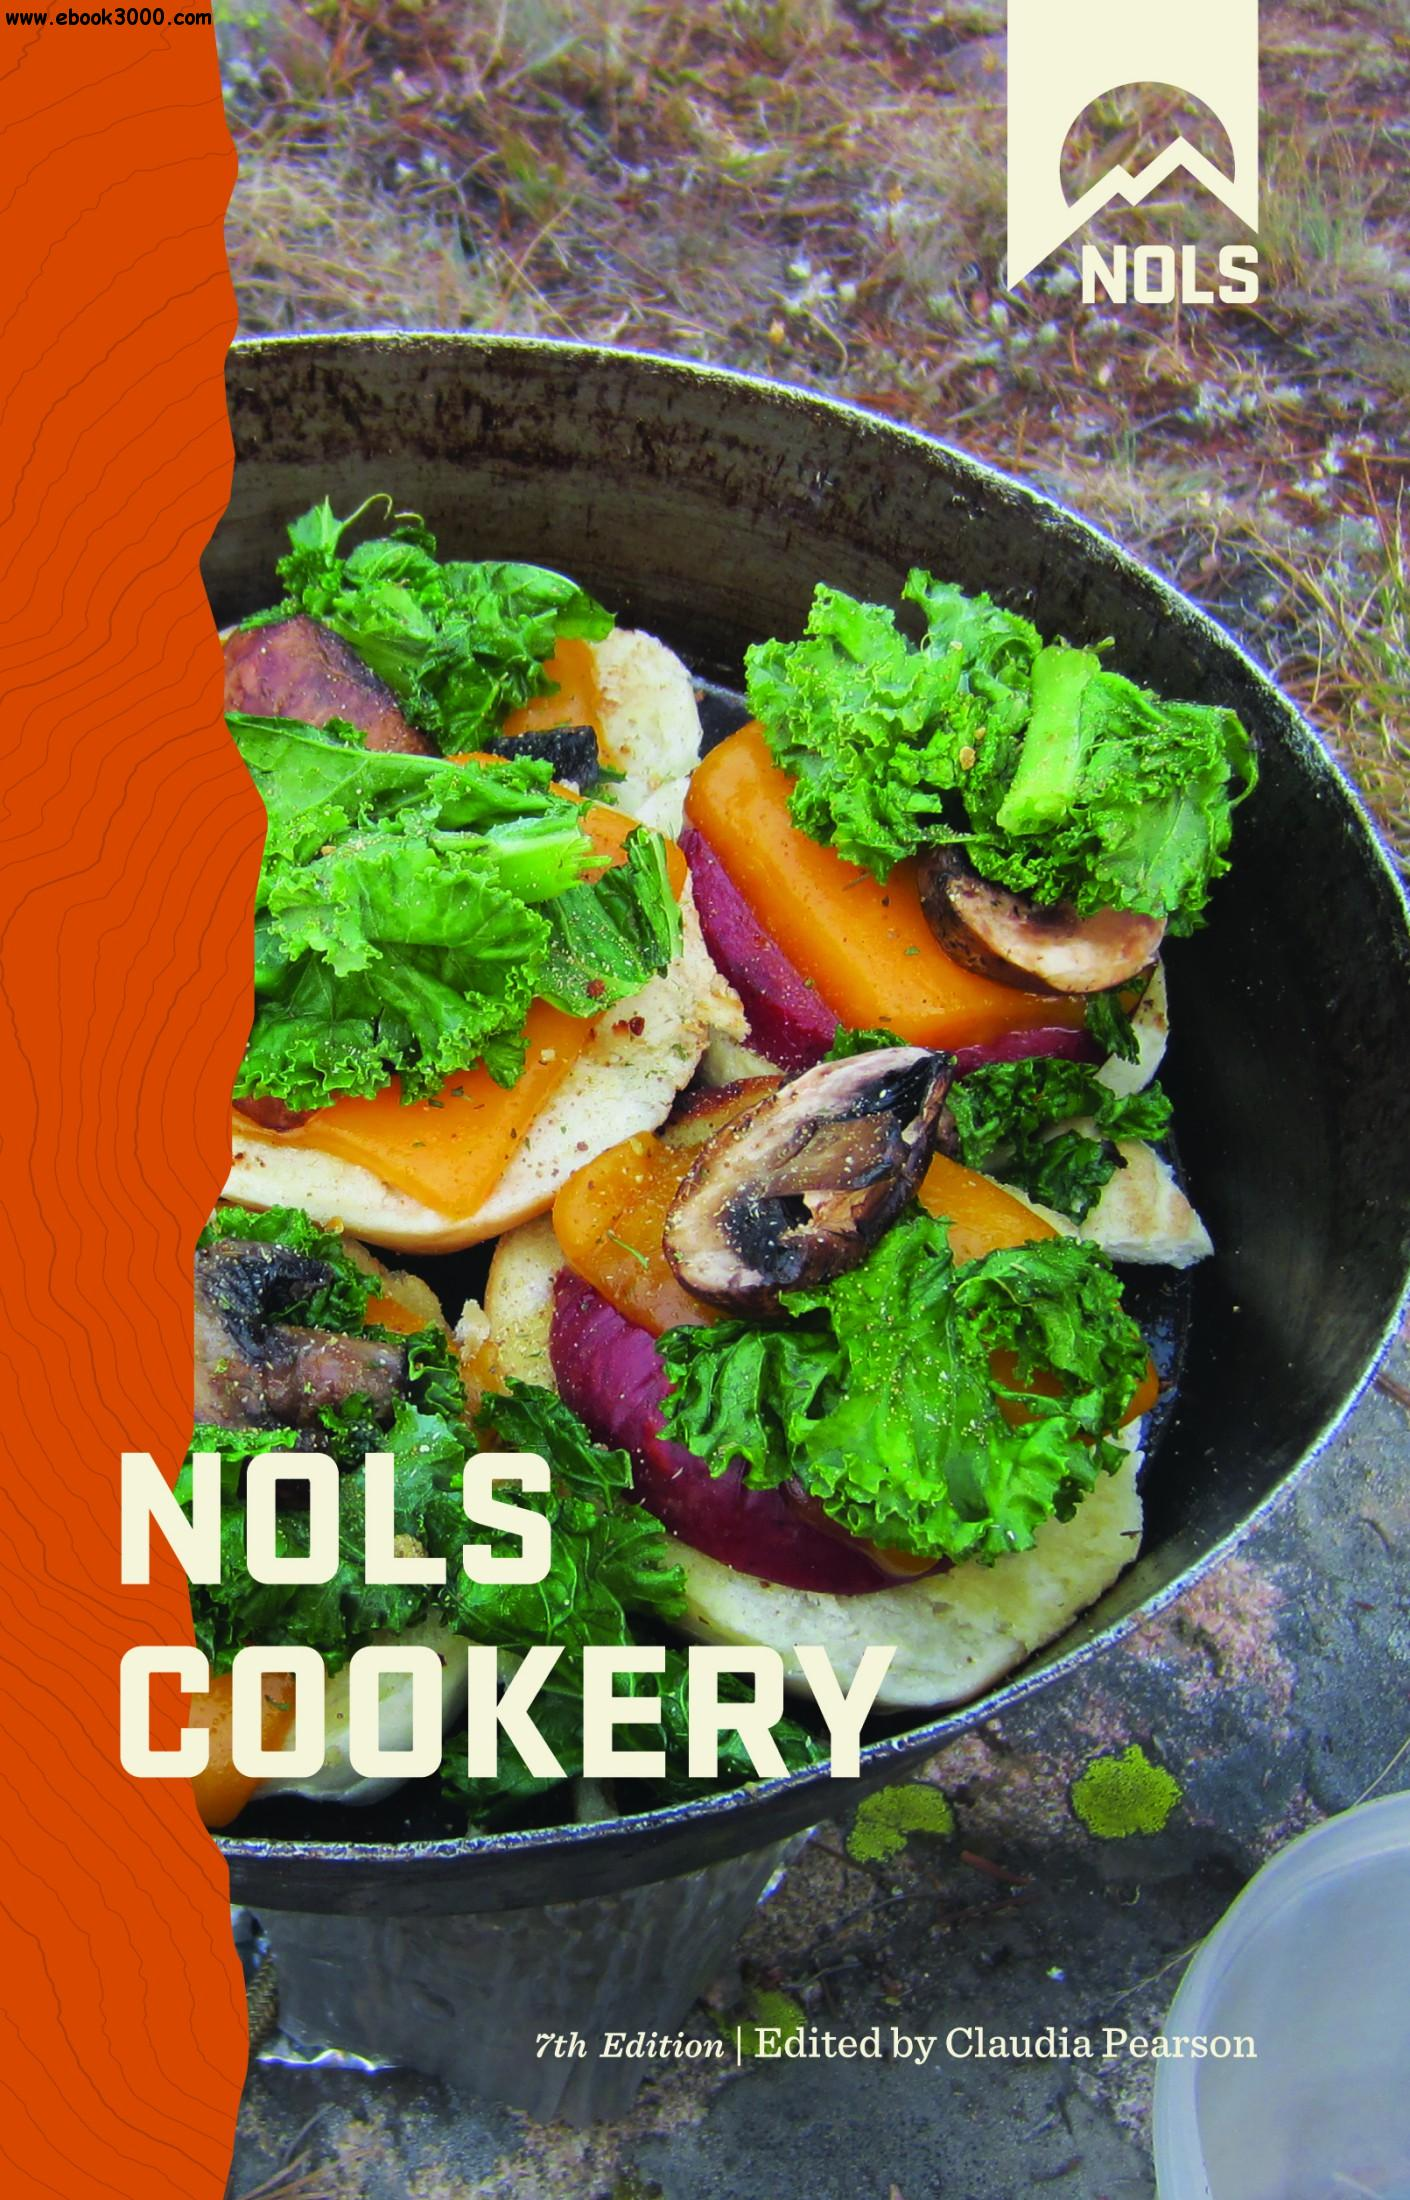 NOLS Cookery, 7th Edition